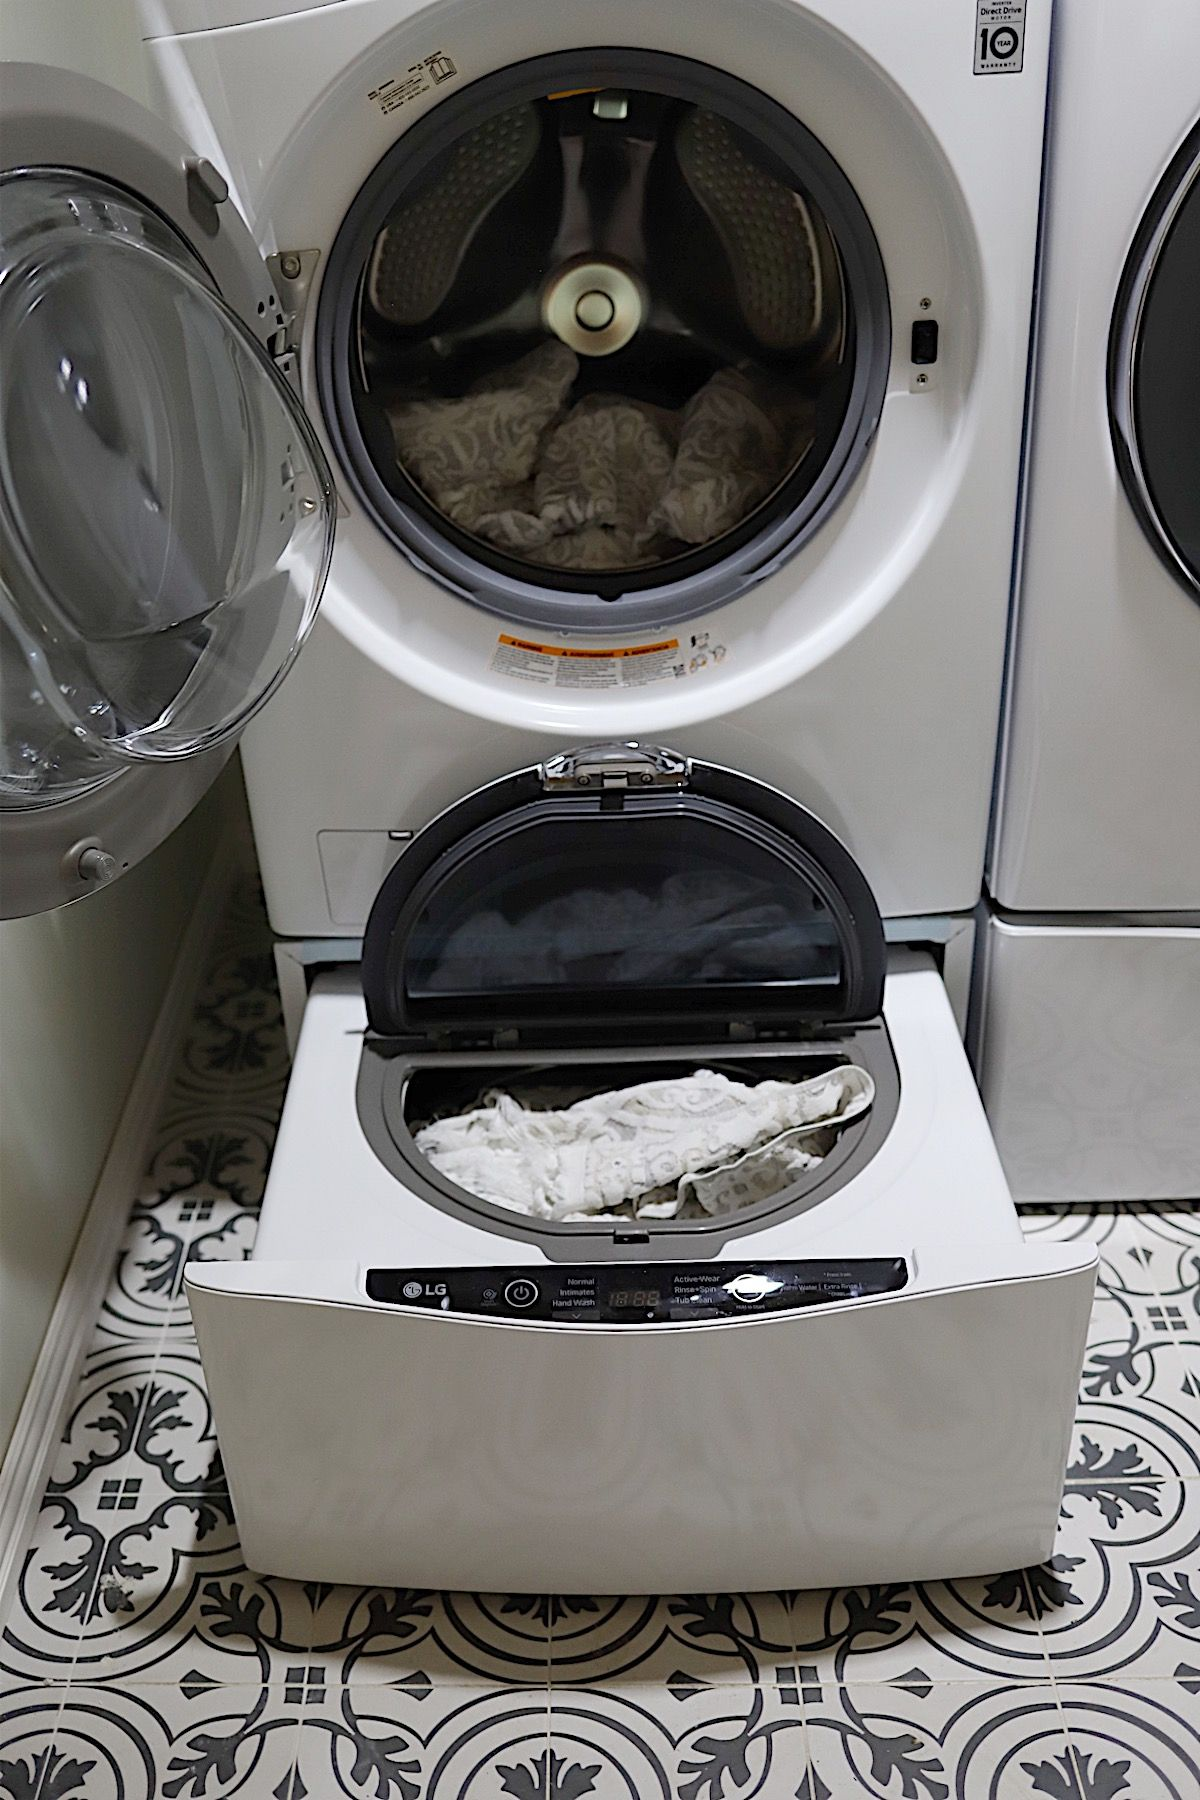 How A Washer And Dryer Can Simplify Your Life My 100 Year Old Home Washer And Dryer New Washer And Dryer Lg Washer And Dryer